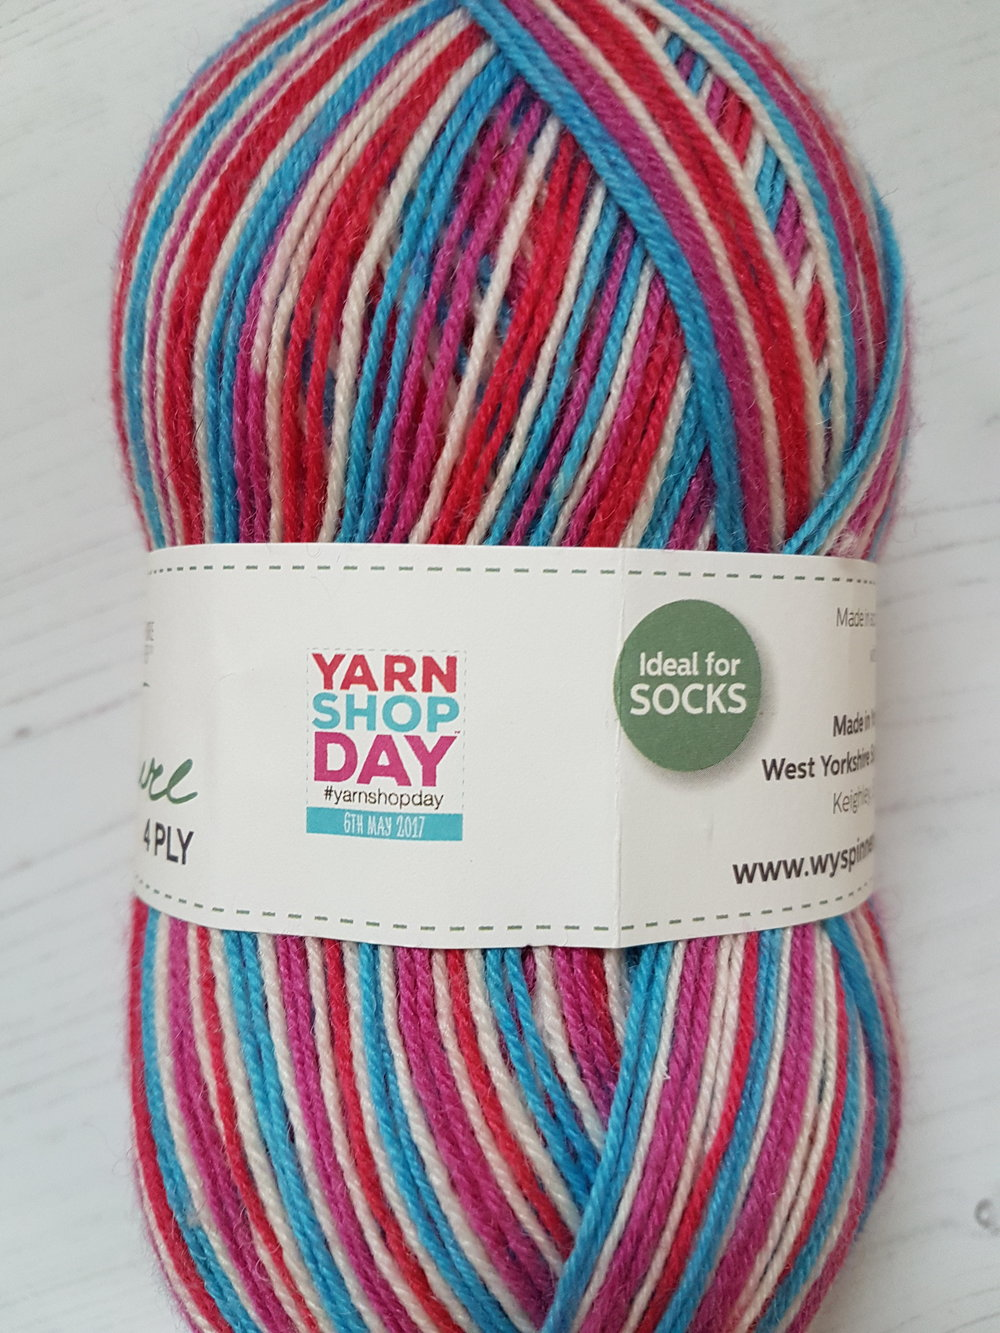 Limited edition LYS Colourway from West Yorkshire Spinners